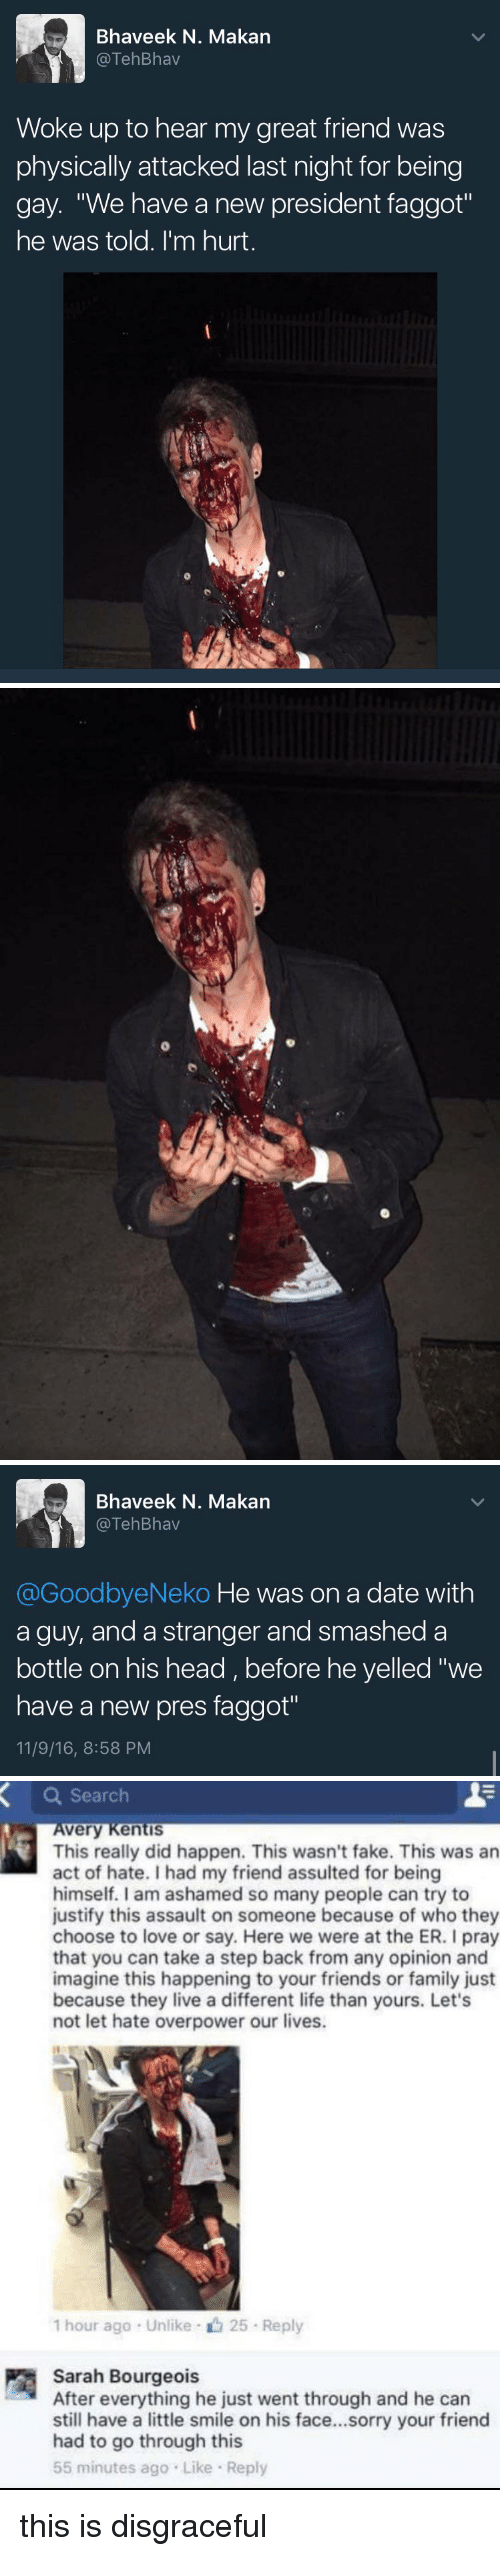 "Opinionating: Bhaveek N. Makan  TehBhav  Woke up to hear my great friend was  physically attacked last night for being  gay. ""We have a new president faggot""  he was told. I'm hurt   Bhaveek N. Makan  TehBhav  @GoodbyeNeko He was on a date with  a guy, and a stranger and smashed a  bottle on his head before he yelled ""we  have a new pres faggot""  11/9/16, 8:58 PM   a Search  very Kentis  This really did happen. This wasn't fake. This was an  act of hate. had my friend assulted for being  himself. I am ashamed so many people can try to  justify this assault on someone because of who they  choose to love or say. Here we were at the ER. I pray  that you can take a step back from any opinion and  imagine this happening to your friends or family just  because they live a different life than yours. Let's  not let hate overpower our lives.  1 hour ago Unlike 25 Reply  Sarah Bourgeois  After everything he just went through and he can  still have a little smile on his face...sorry your friend  had to go through this  55 minutes ago Like Reply this is disgraceful"